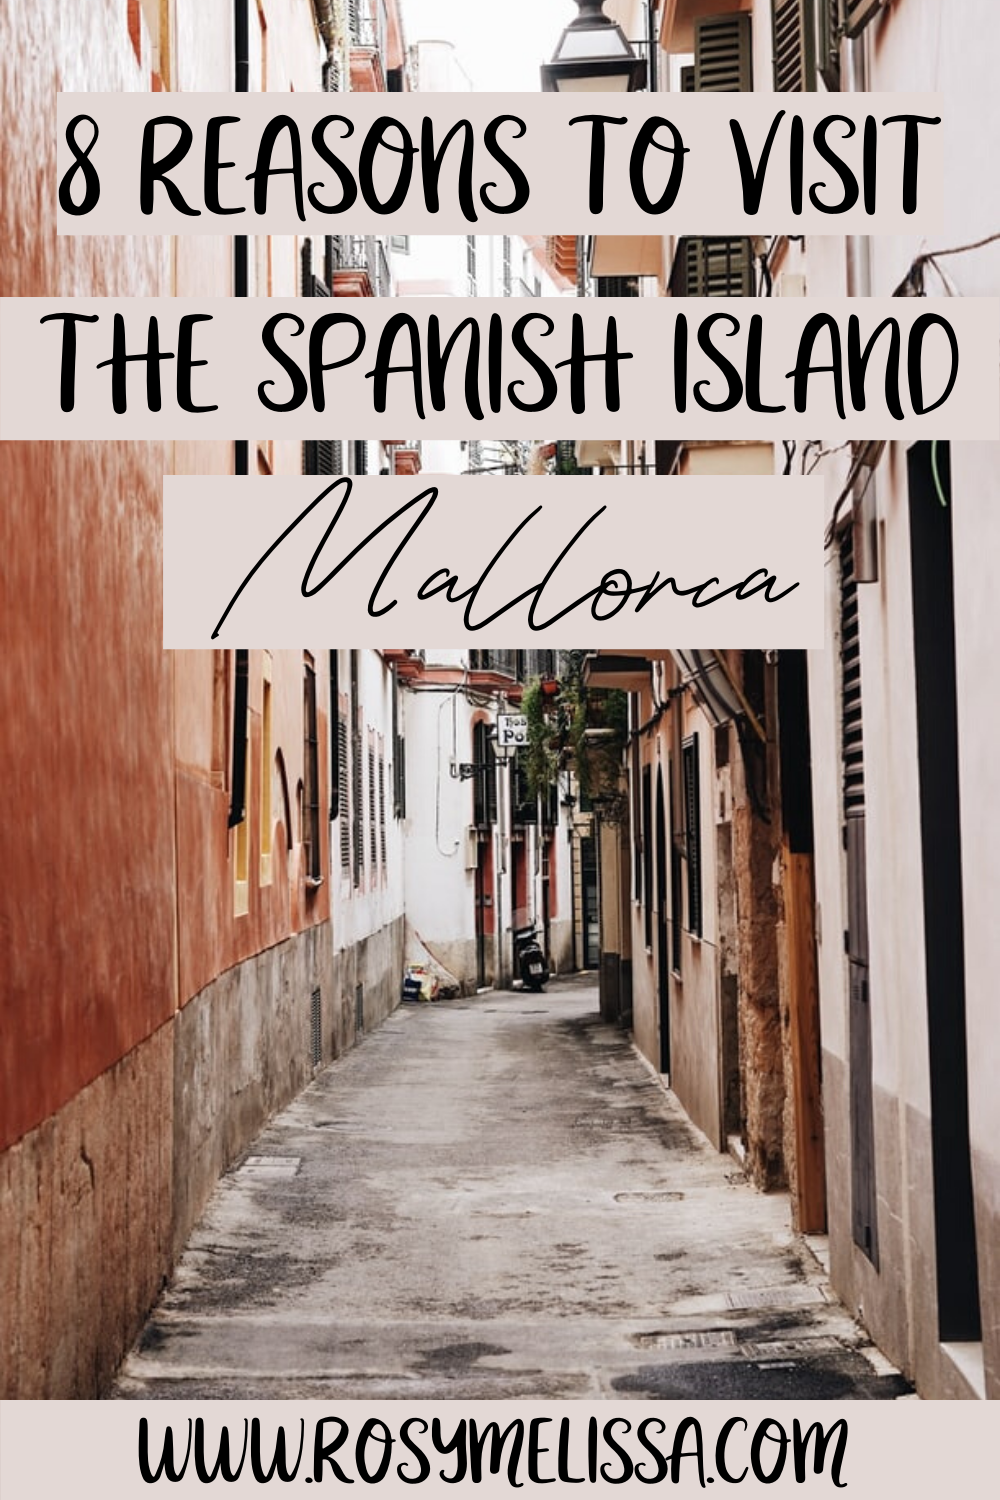 8 reasons to visit mallorca in spain, spanish island, island experiences